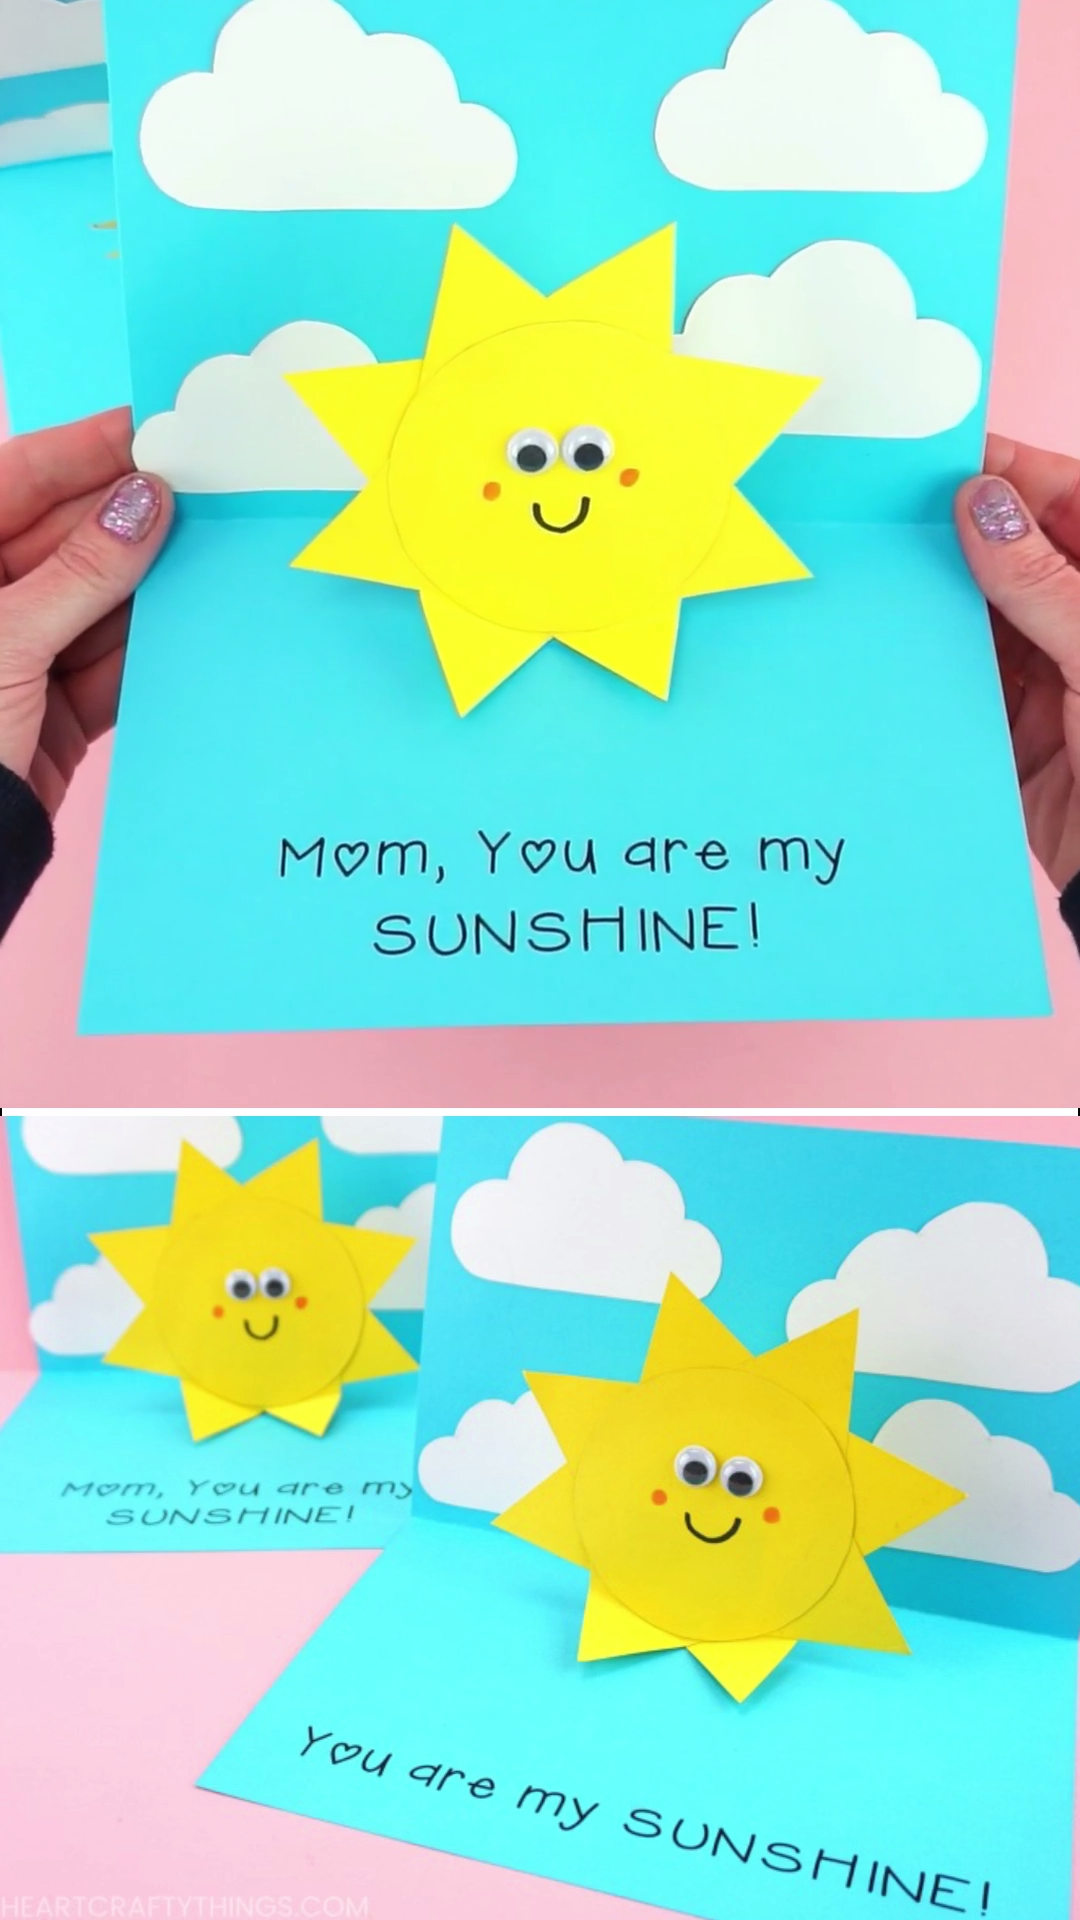 How to Make a You are my Sunshine Card You are my Sunshine Card Easy Pop Up Sun Card Template Simple and easy You are my Sunshine Card for kids to make for Mothers Day Fa...